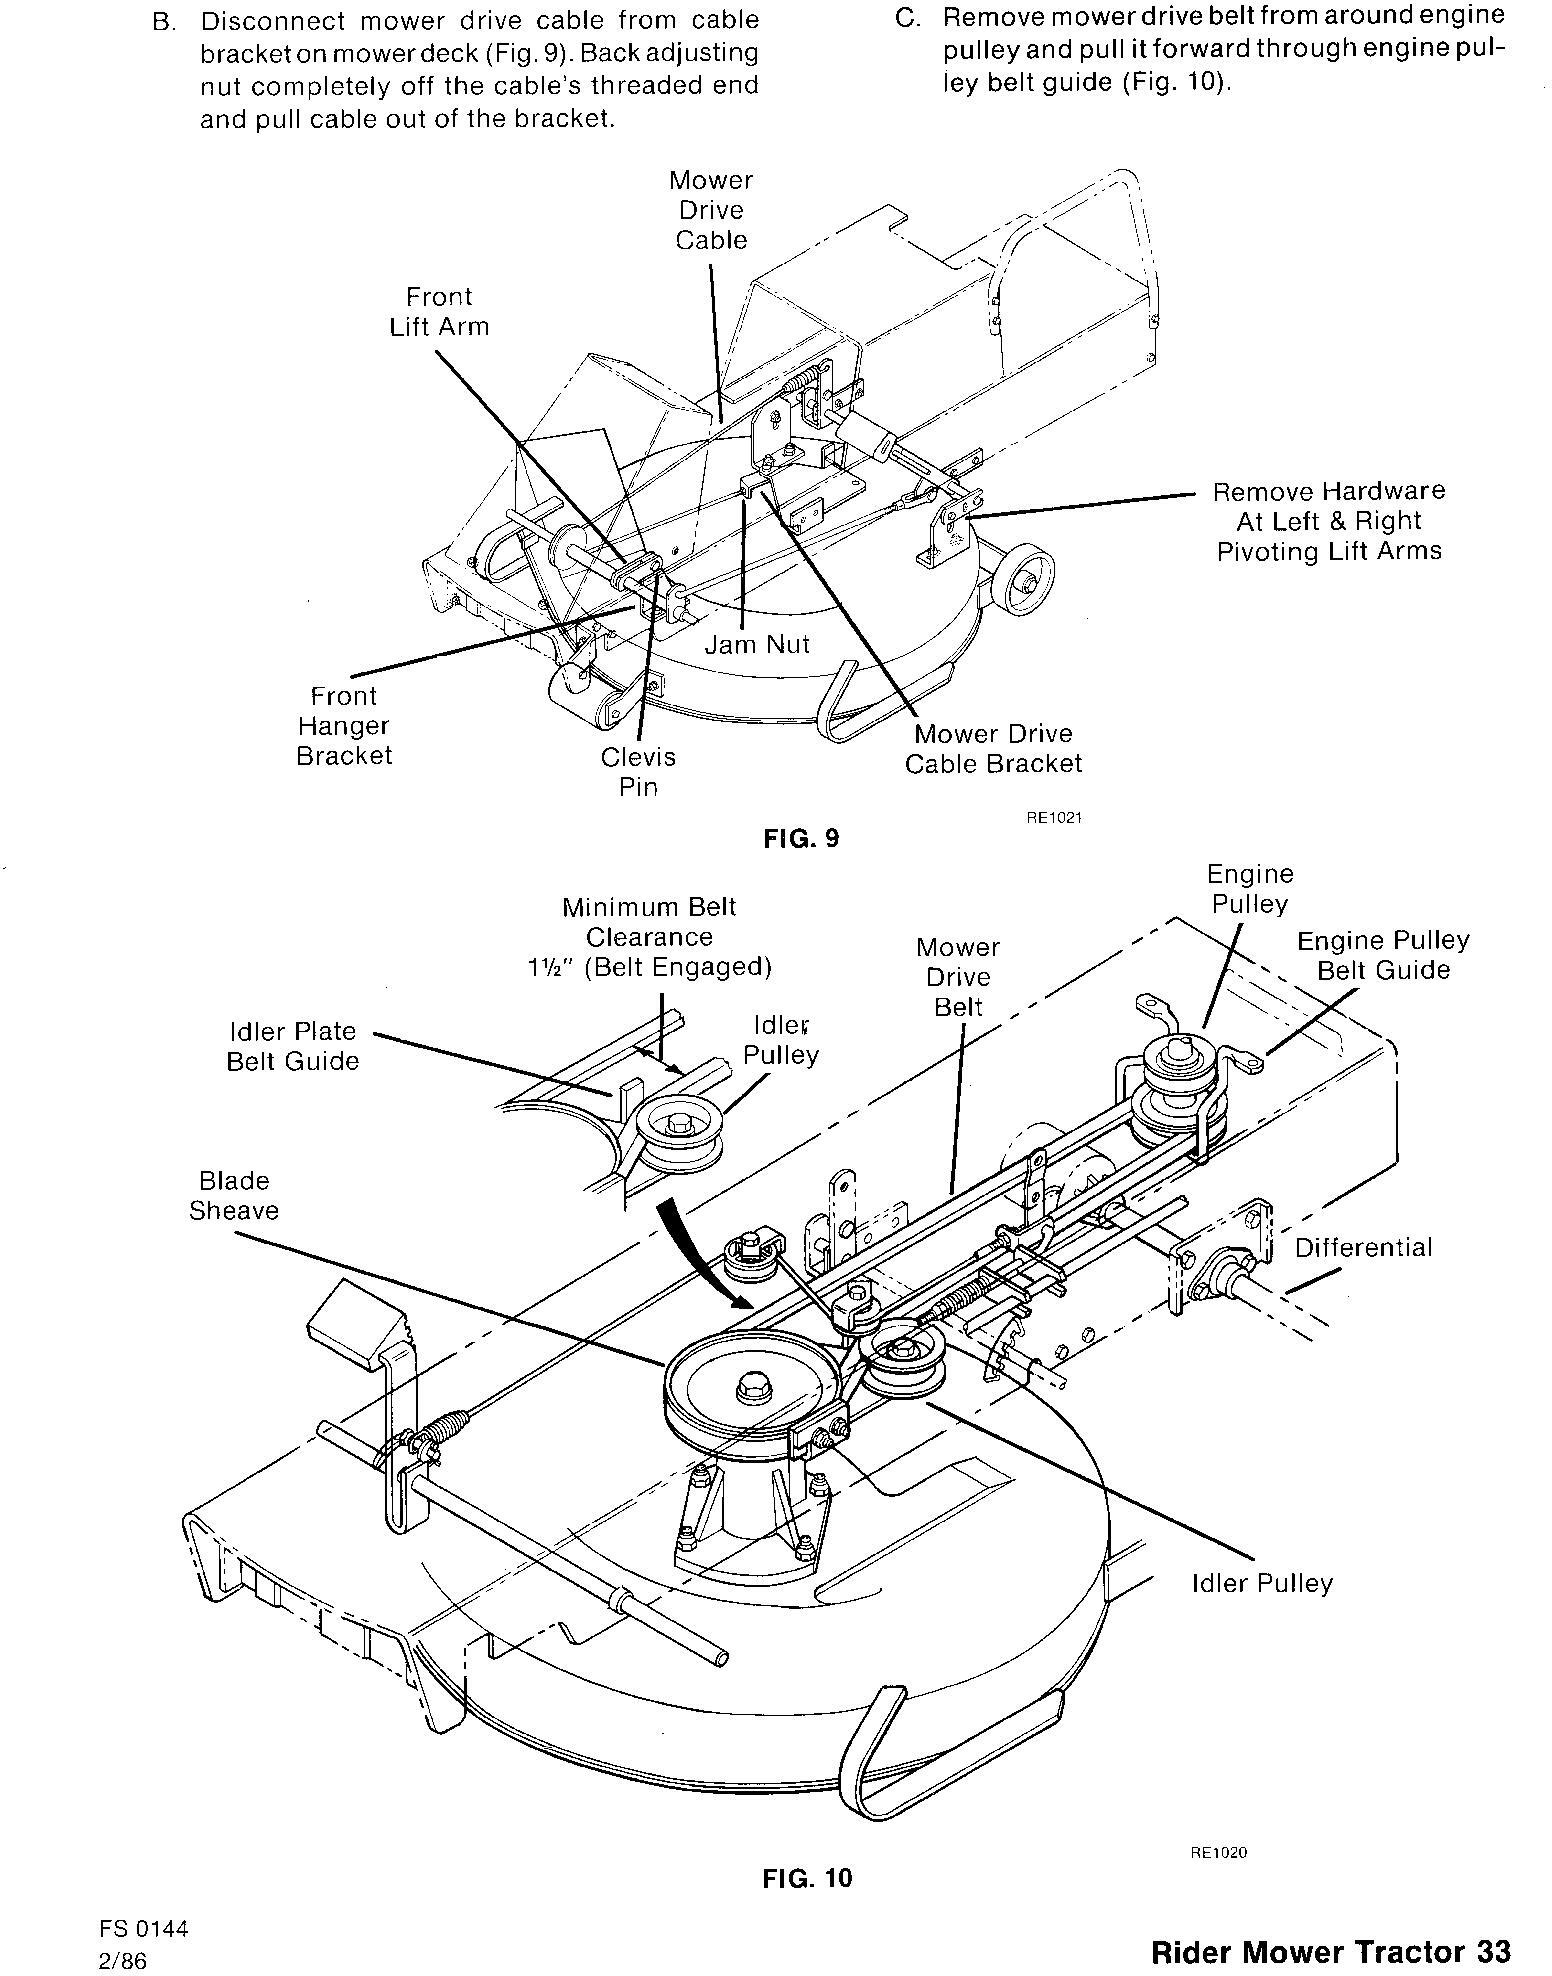 Ford 09GN-2051/2052/2053 / 2054/2055/2056 Riding Mower Tractor Service Repair Manual (SE4363-4) - 1